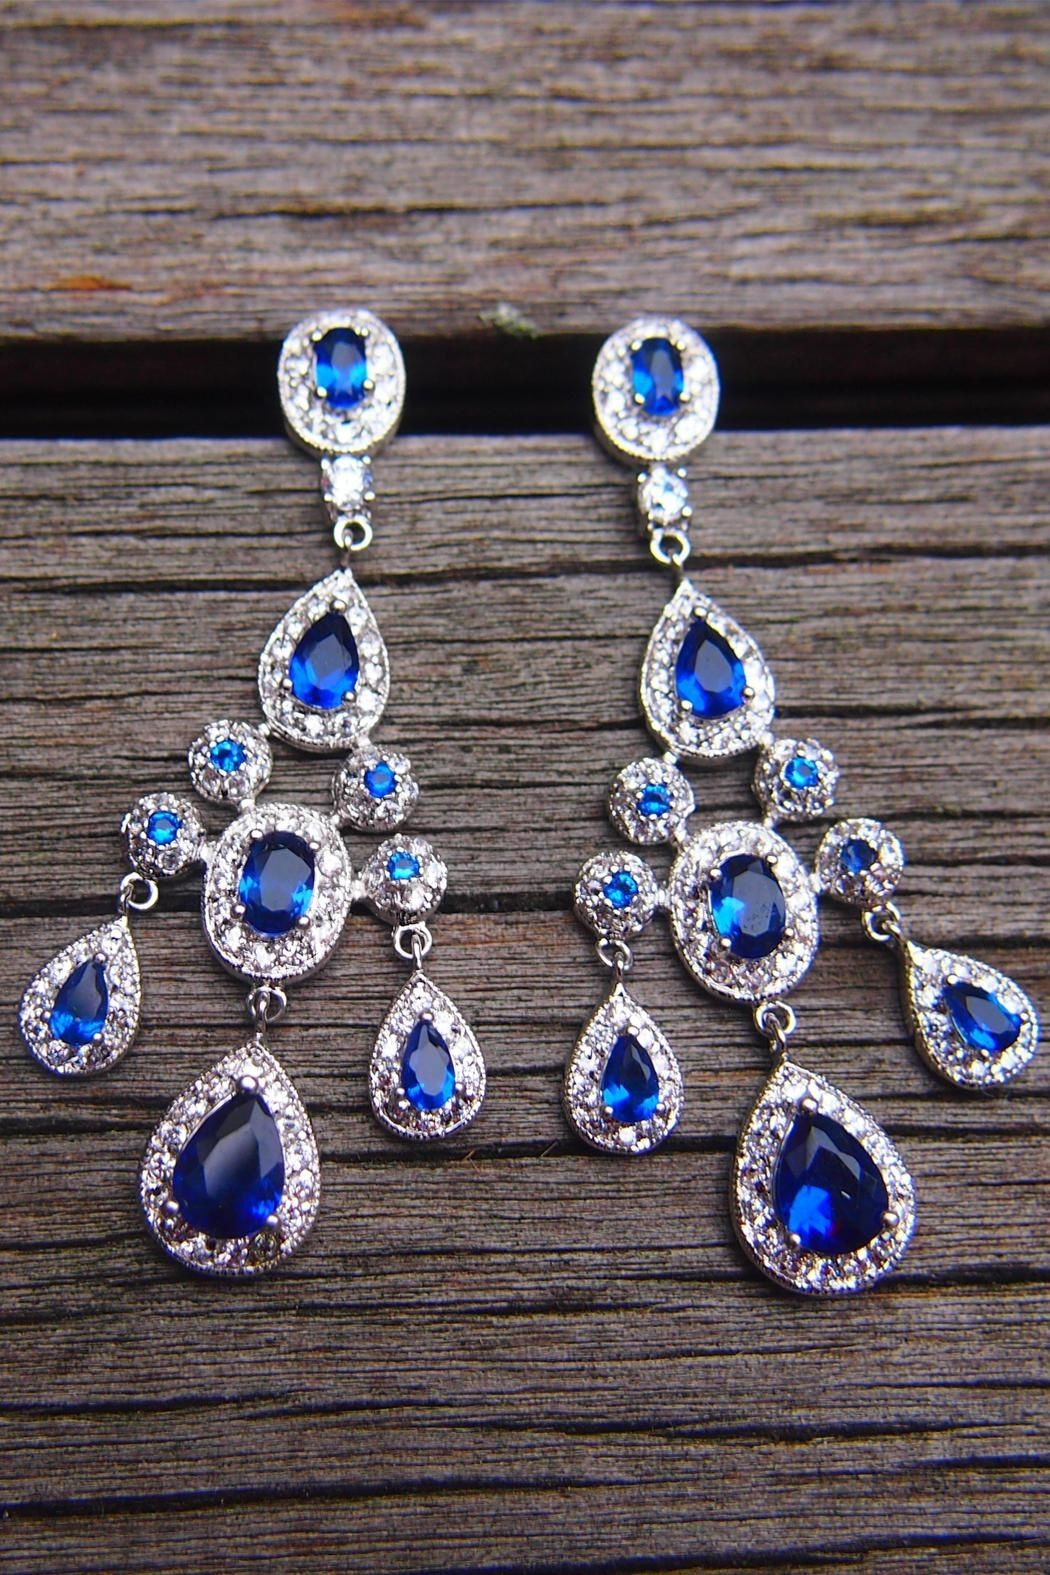 8b16a521bc3432 Wild Lilies Jewelry Sapphire Chandelier Earrings from Philadelphia by Wild  Lilies Jewelry — Shoptiques